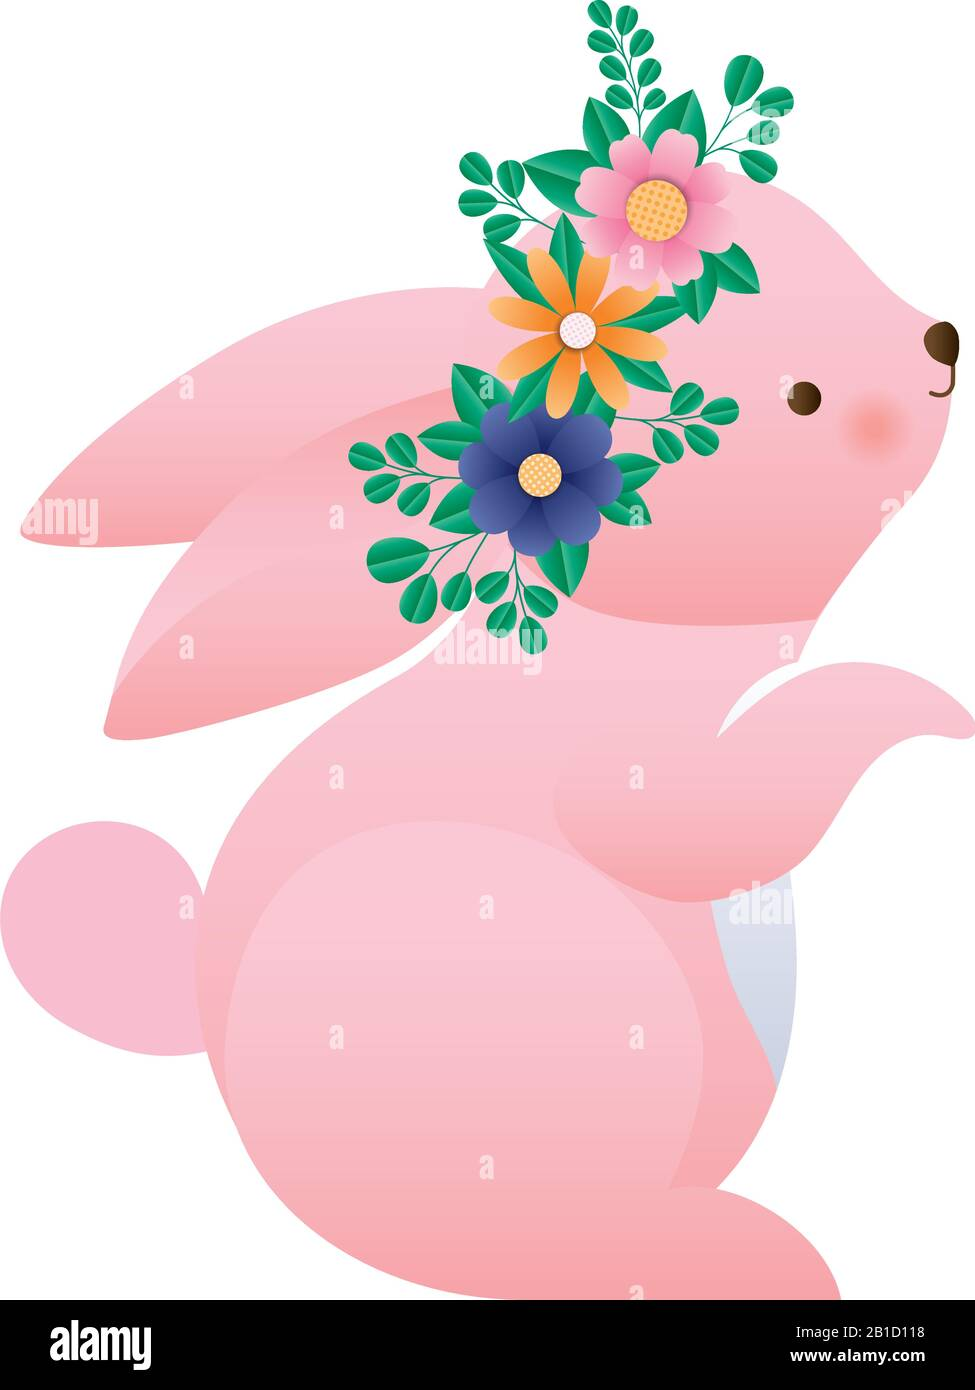 Cute Rabbit Cartoon With Flowers Crown Vector Design Stock Vector Image Art Alamy Here you can explore hq flower crown transparent illustrations, icons and clipart with filter setting polish your personal project or design with these flower crown transparent png images, make it. alamy